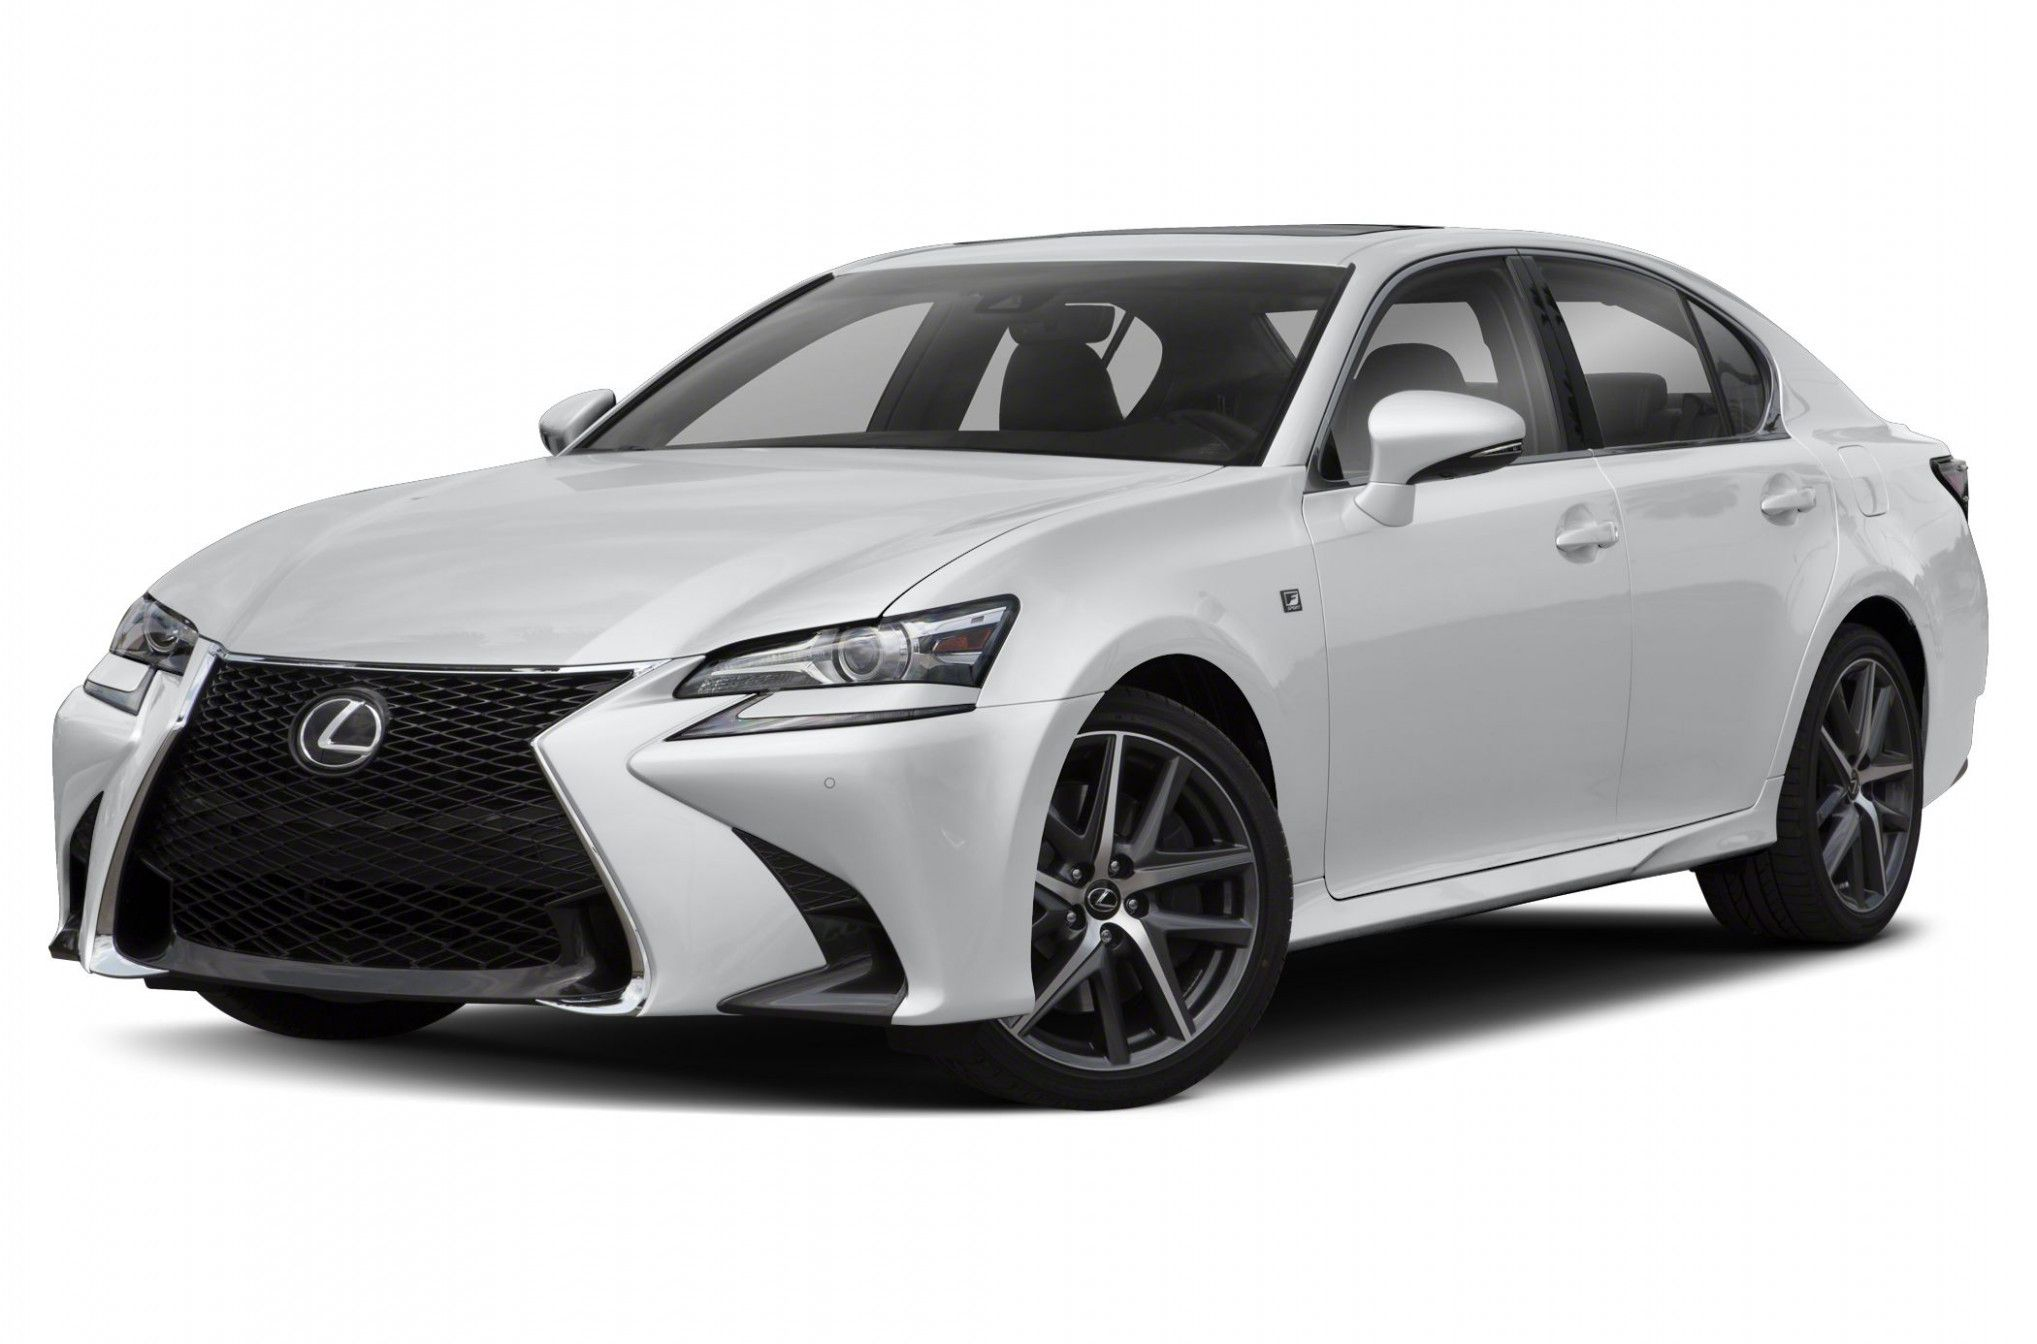 12 Wallpaper 2020 Lexus F Sport Price in 2020 Lexus